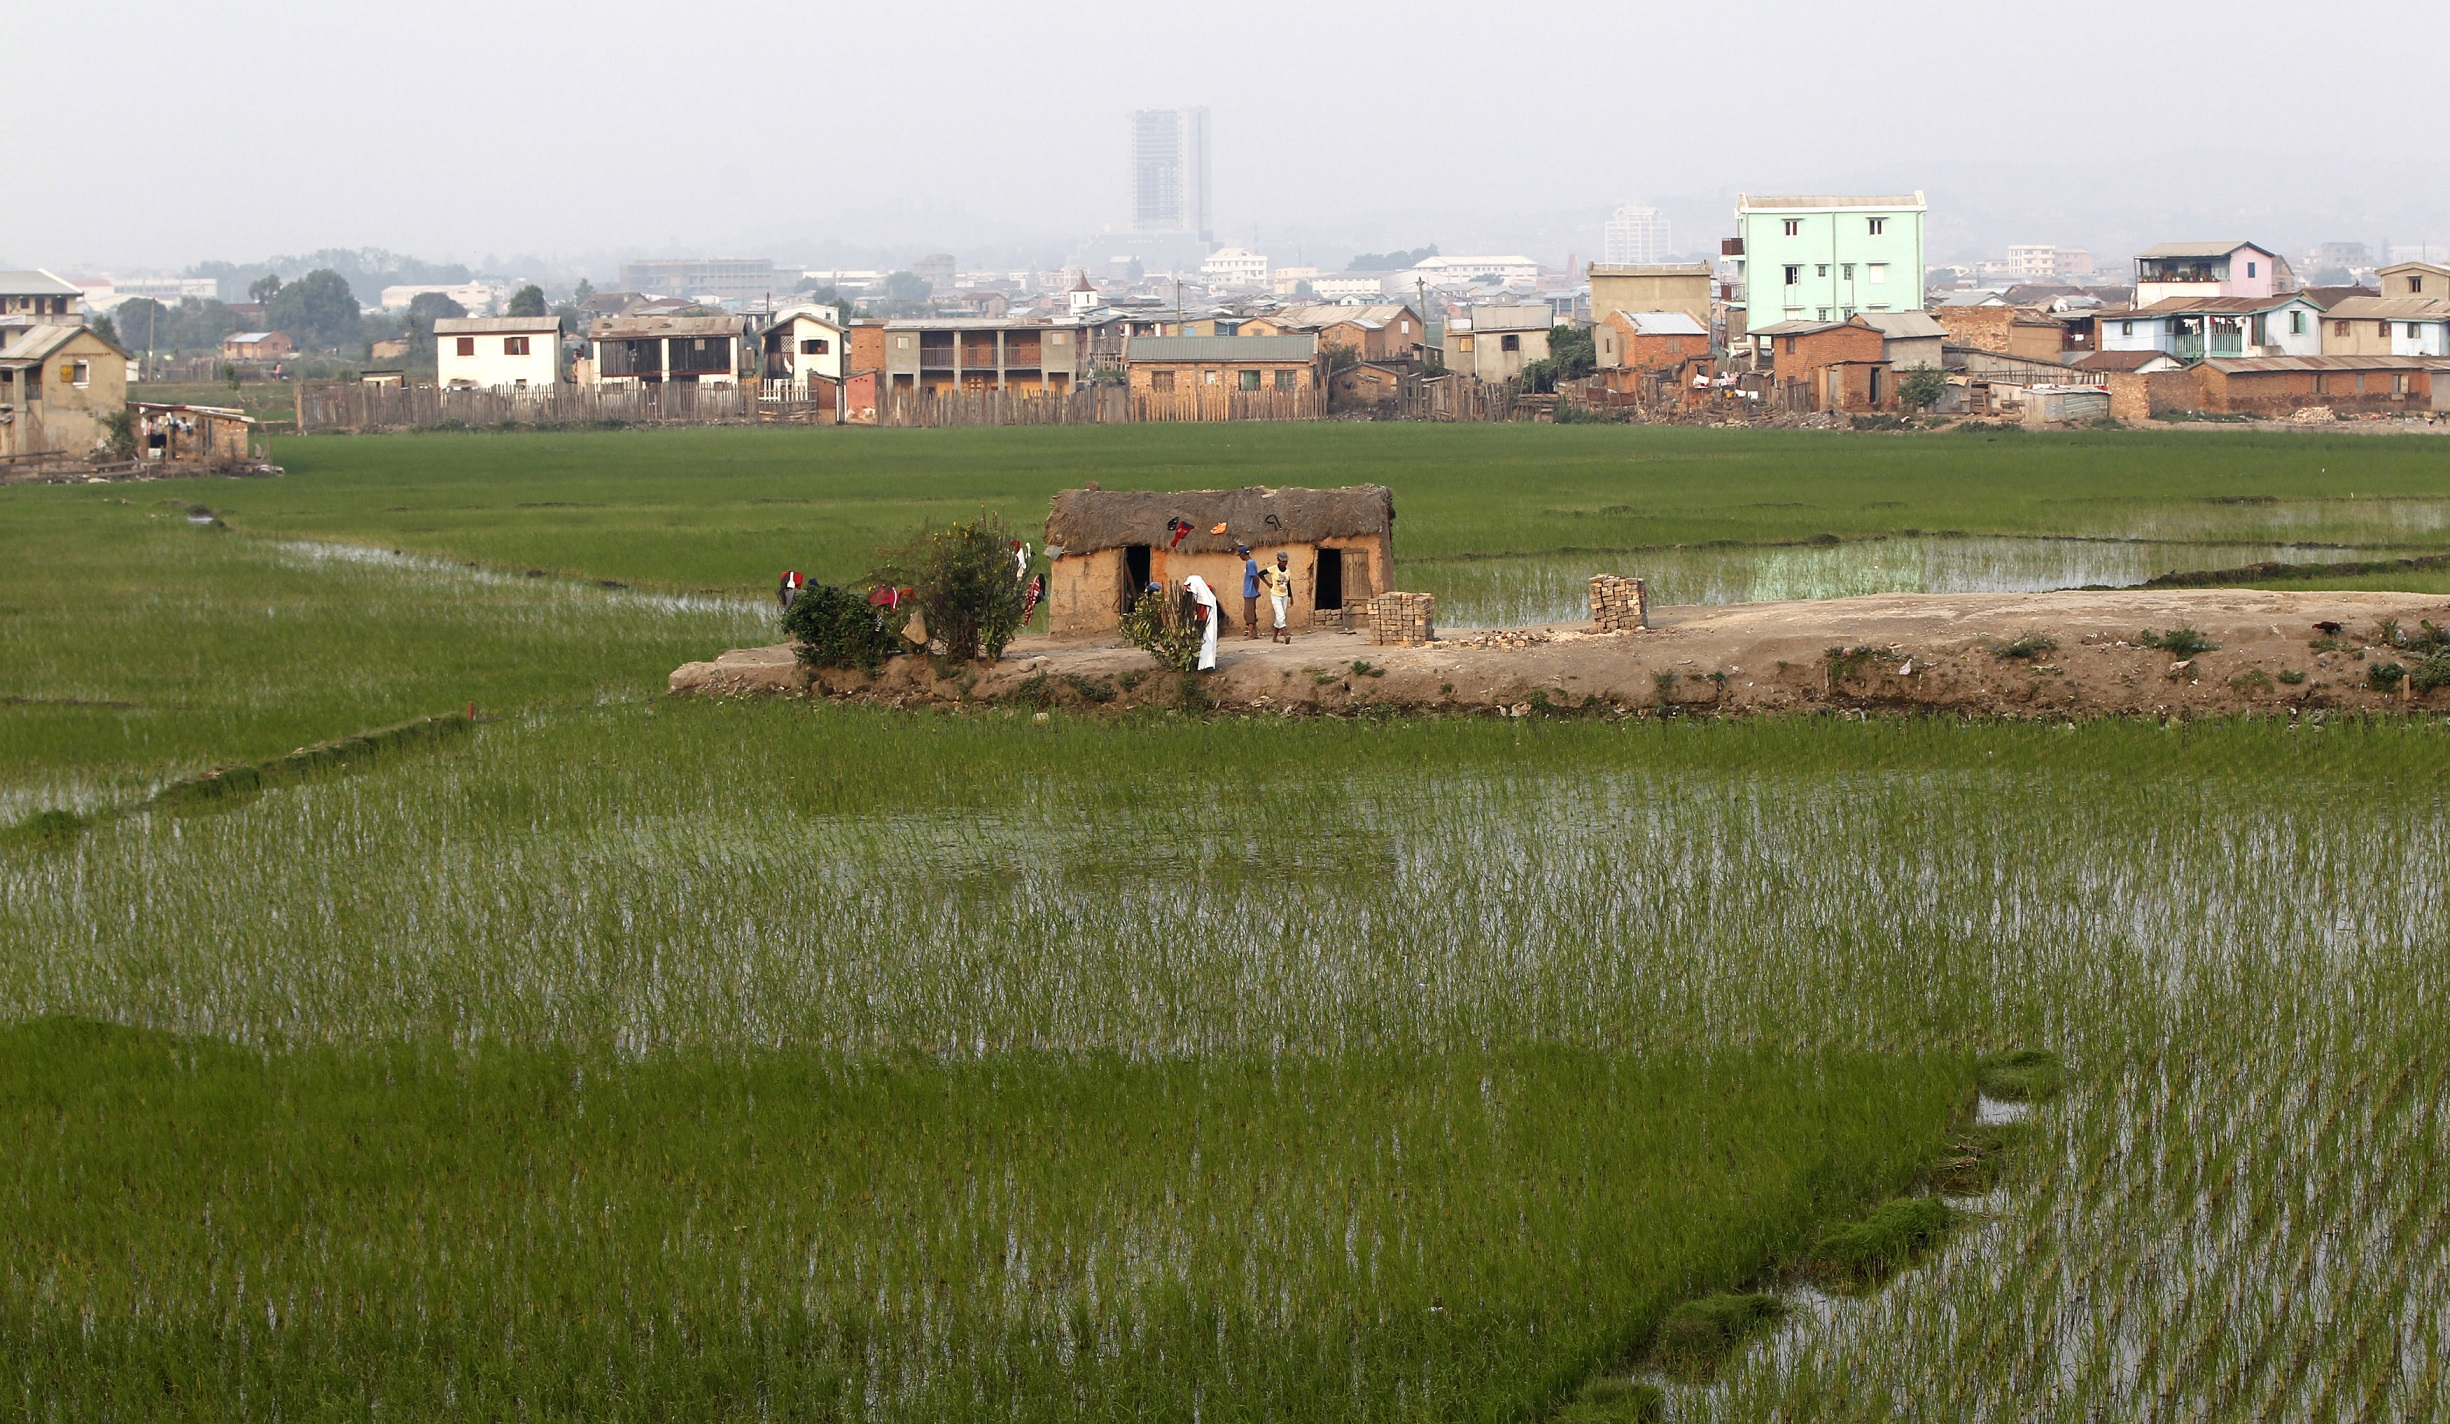 A house stands within a paddy field in Madagascar's capital Antananarivo, October 23, 2013. Voters in Madagascar's presidential election on Friday desperately hope for an end to a five-year political crisis that has scared off investors and severely damaged the economy, but there is little optimism they will get their wish. REUTERS/Thomas Mukoya (MADAGASCAR - Tags: POLITICS ELECTIONS SOCIETY) - GM1E9AO03RO01